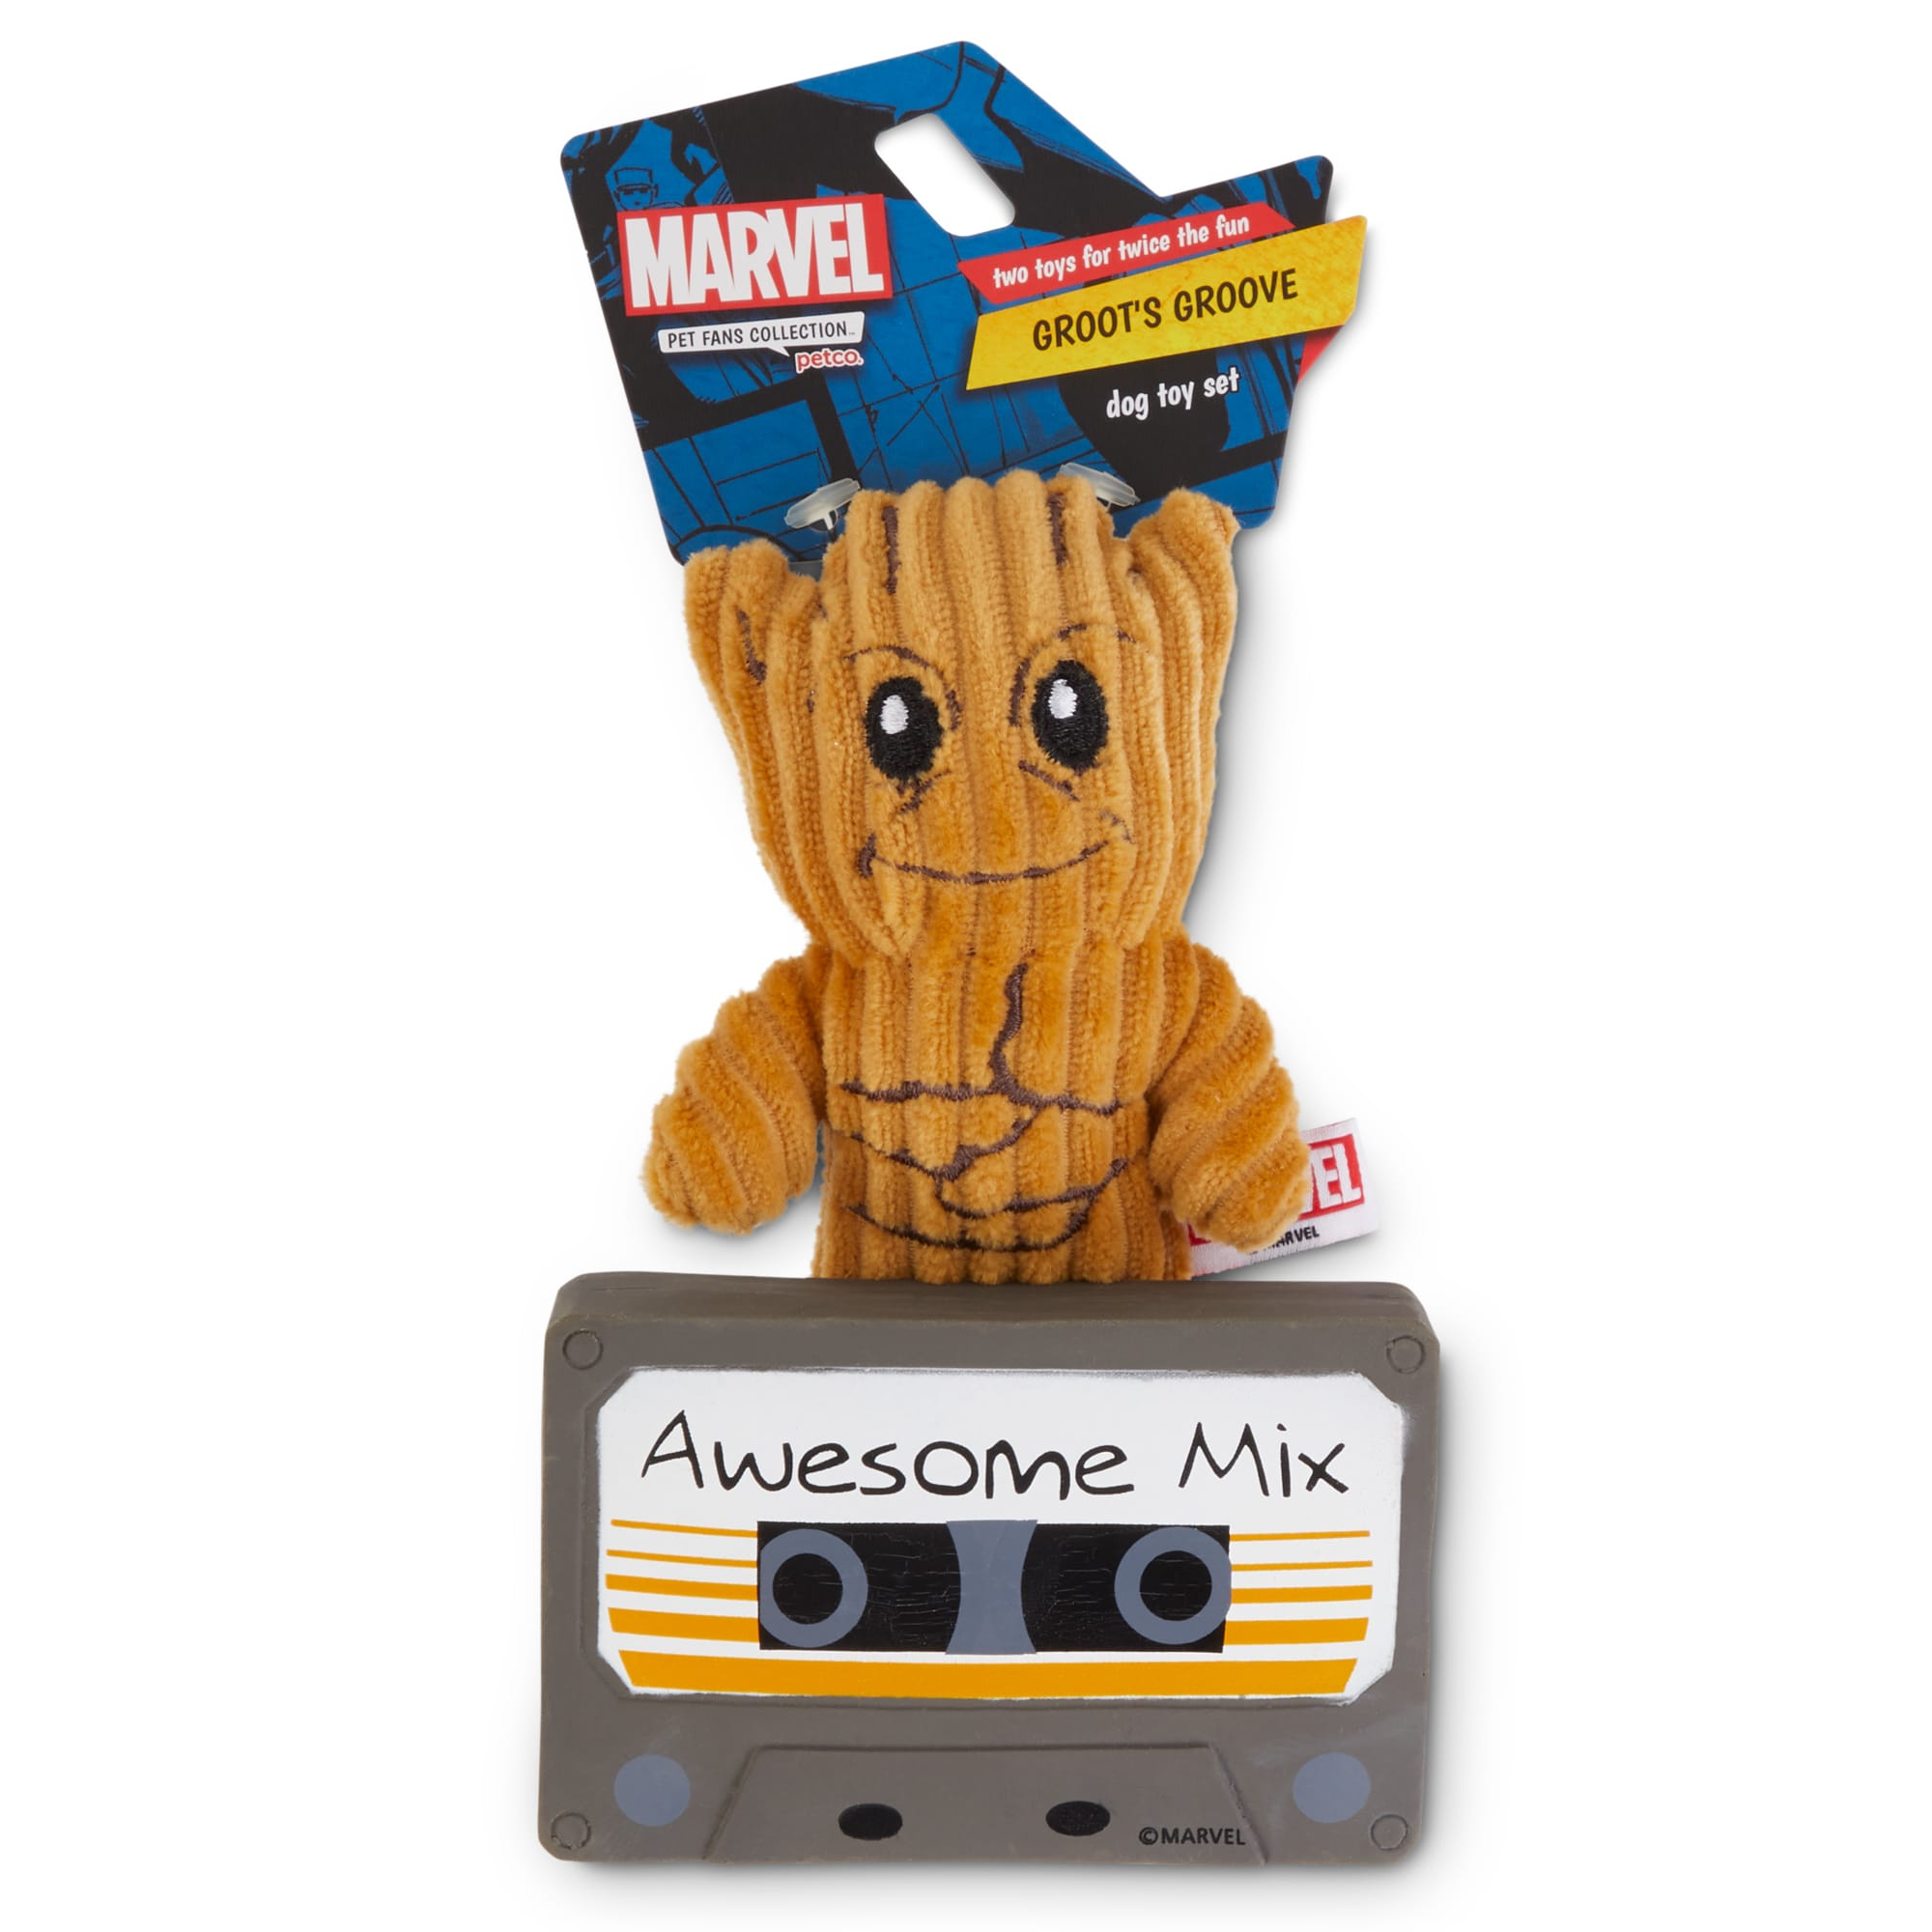 Set Of Dog Stuffed Animals, Marvel Guardians Of The Galaxy Groot S Groove Dog Toy Set X Small Pack Of 2 Petco